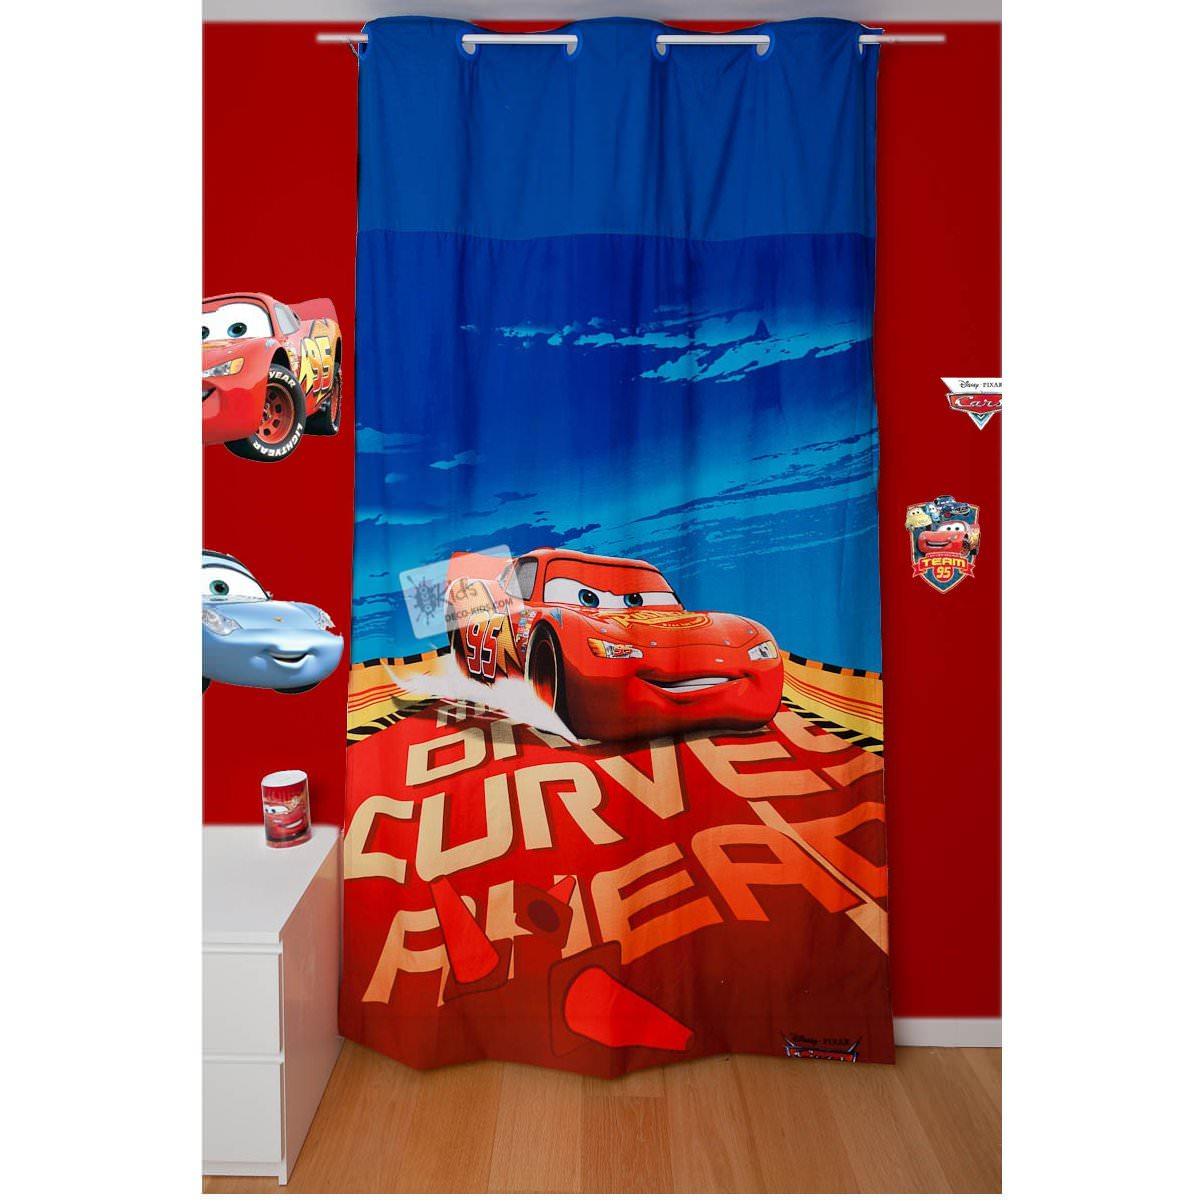 Disney Cars 2 Rideau Rallye 140 X 260 Cm Disney Cars